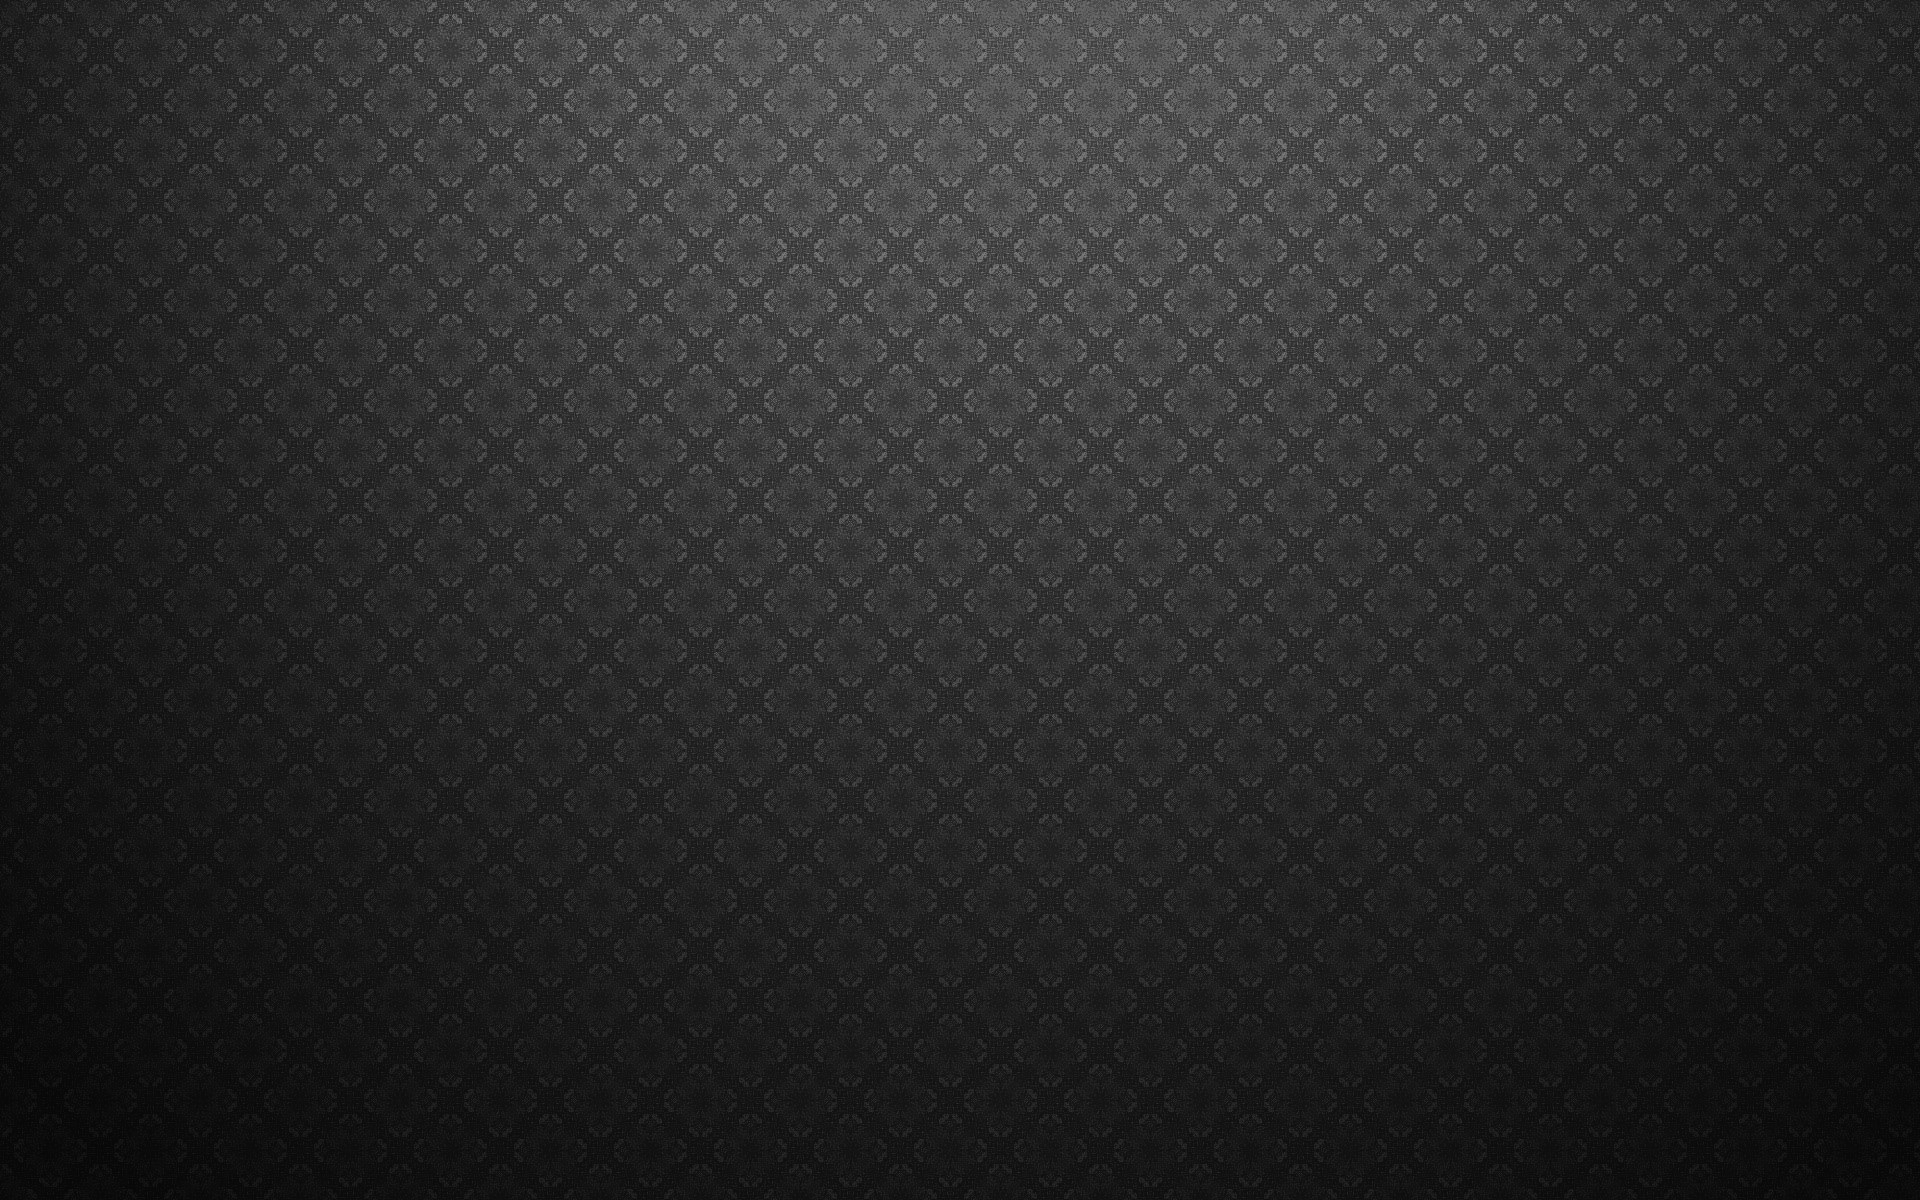 backgroundpng 1920x1200